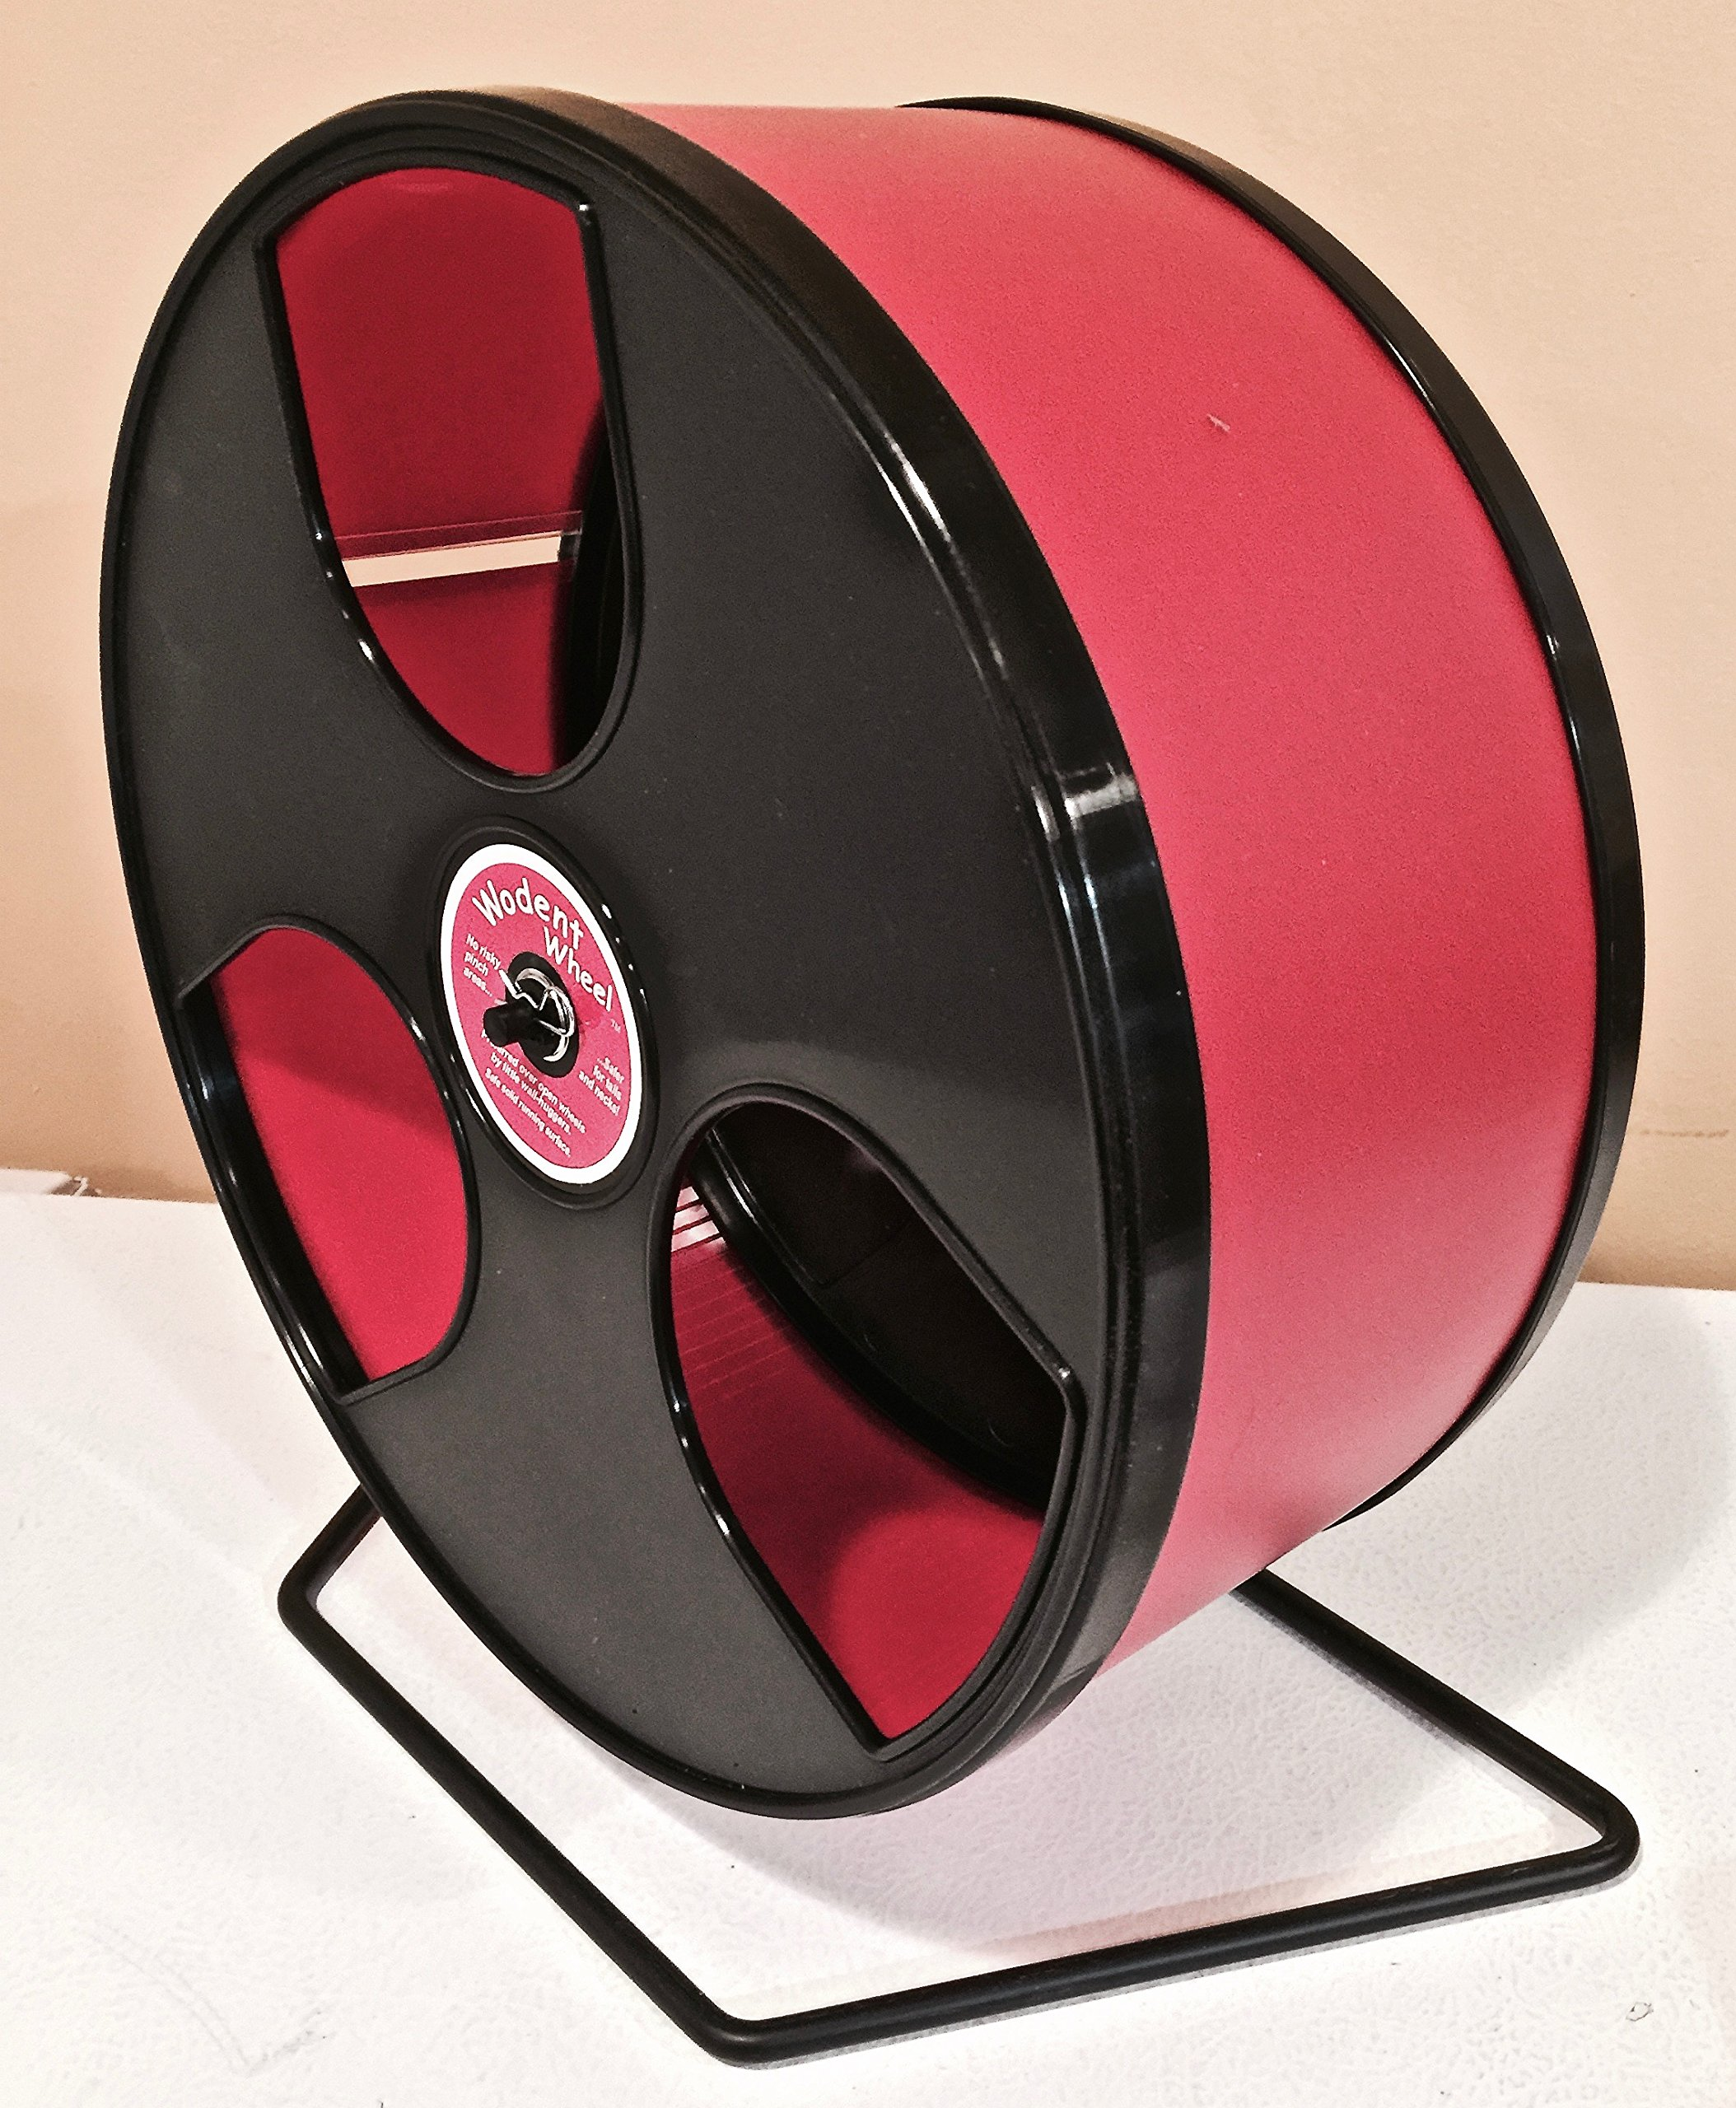 Sugar Hedgehog/Chinchilla Exercise Wide Track 12'' WODENT Wheel in RED with Black Panels by Sugar